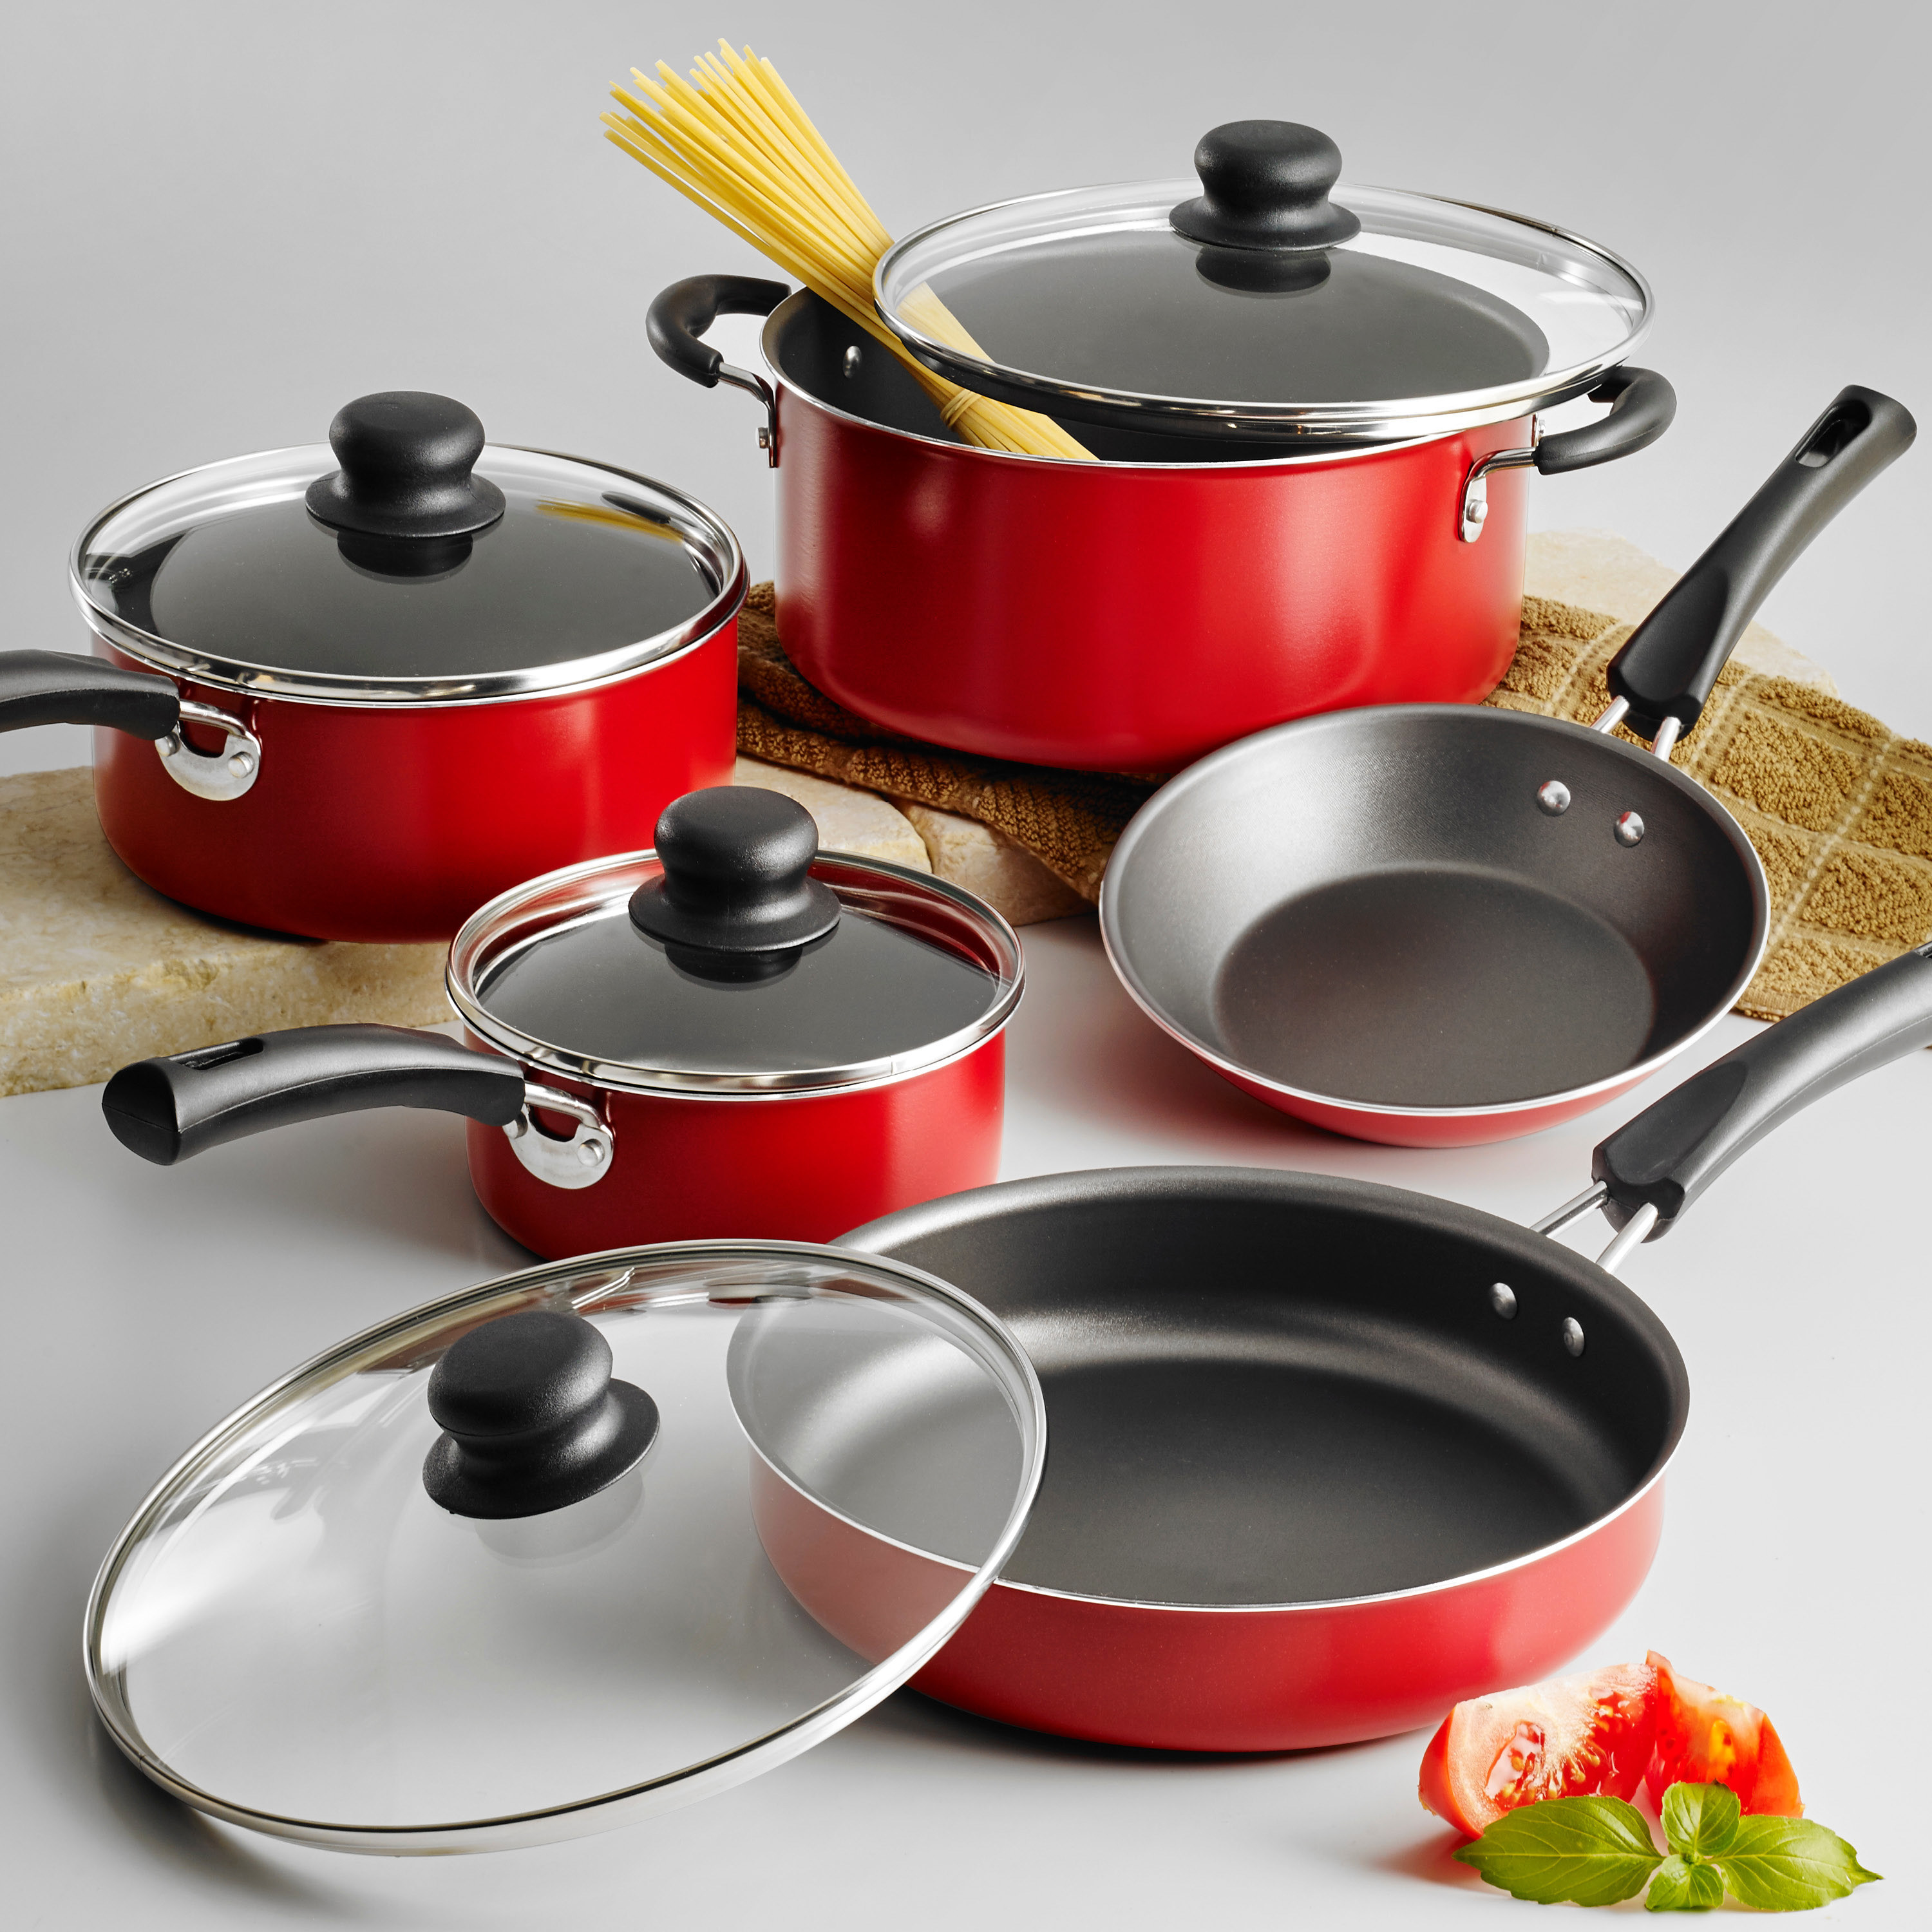 The set of pans in the color red